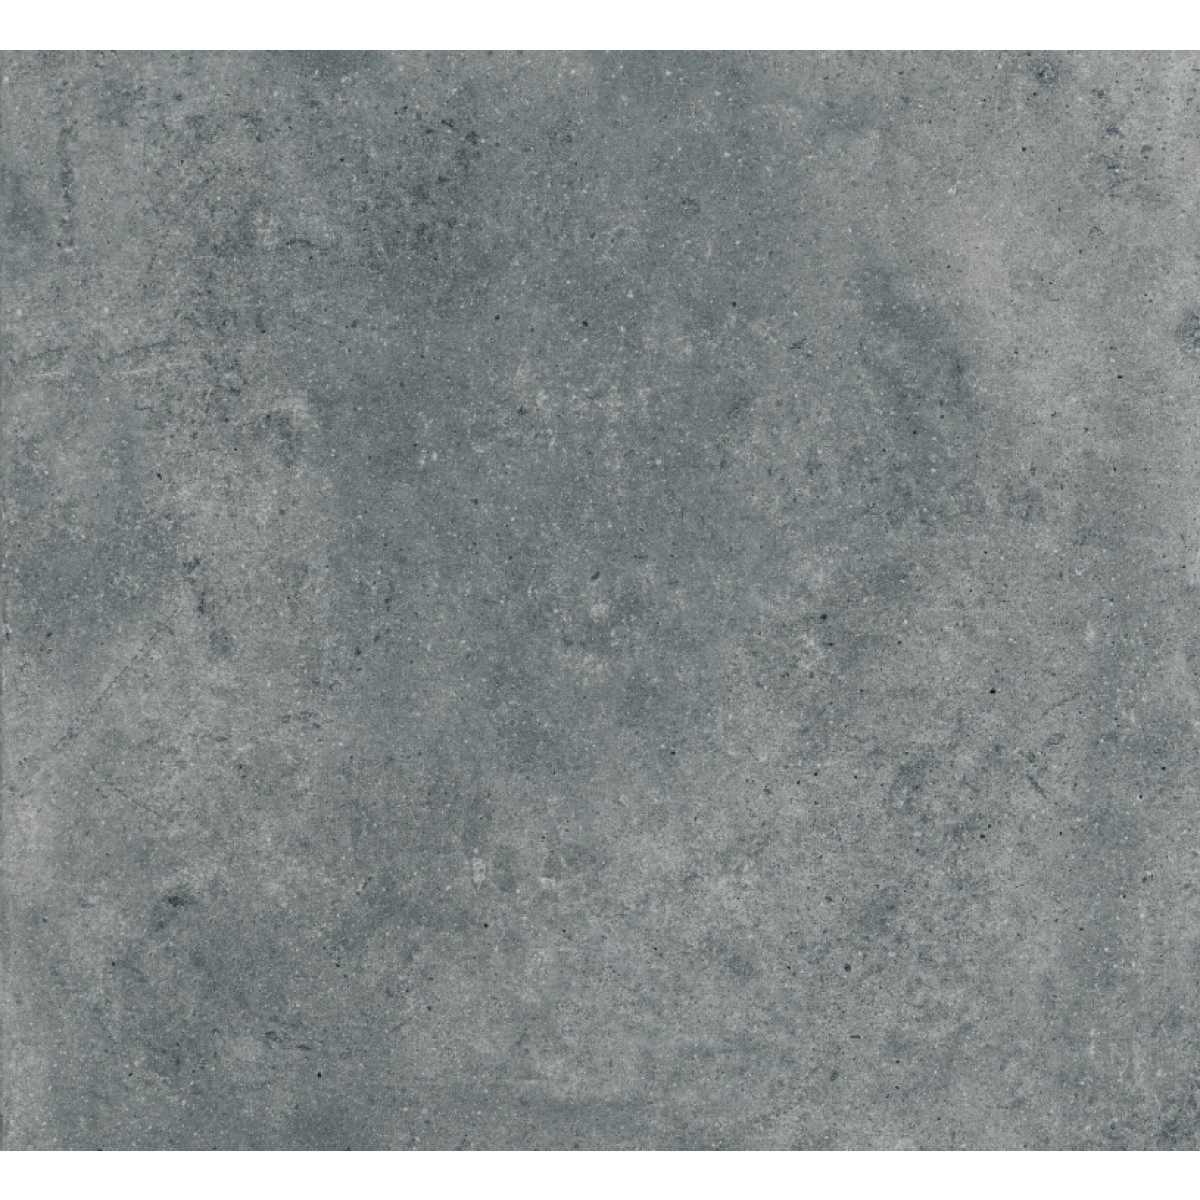 *Concrete* Clear Grey matt 60x60x2cm